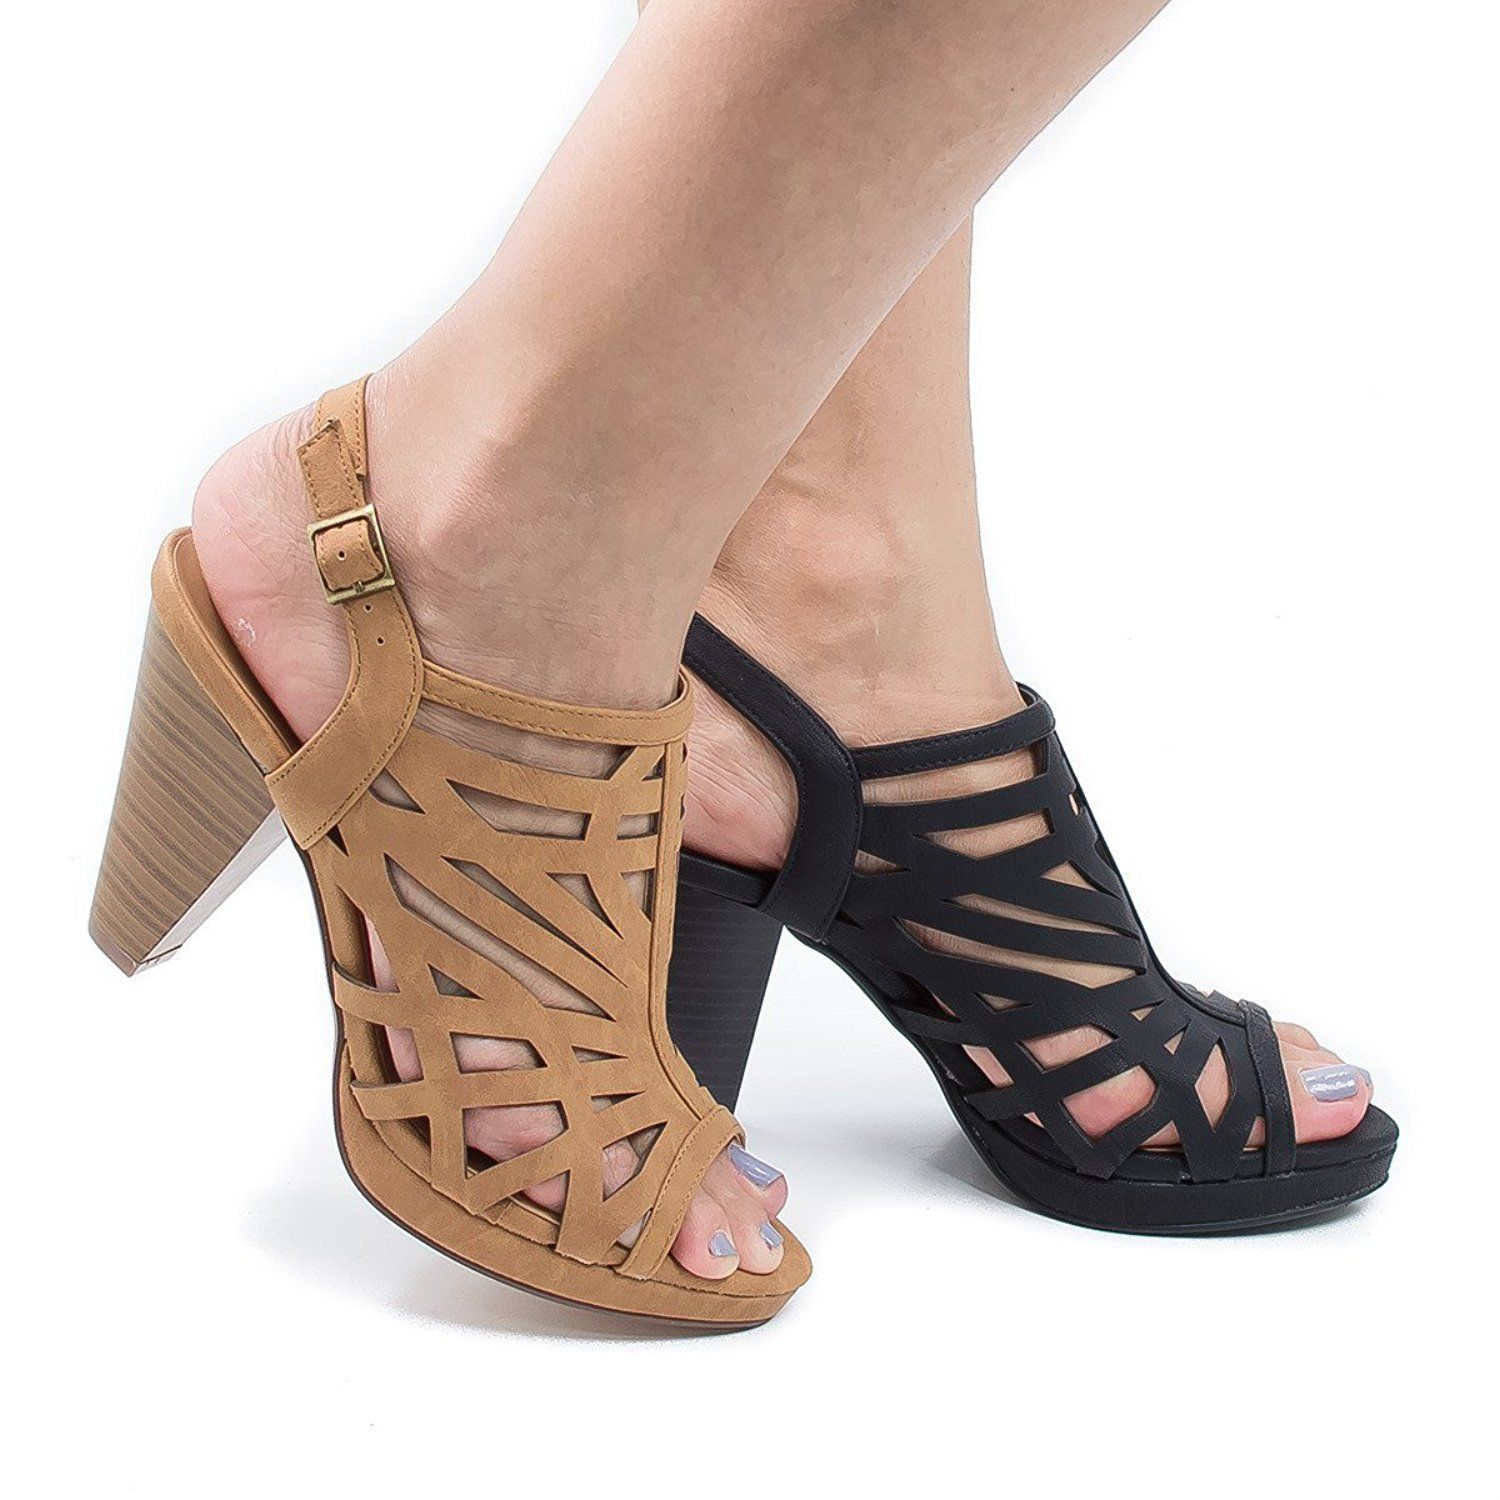 Geometric Cut Out Sling Back Chunky Stacked Heeled Sandals